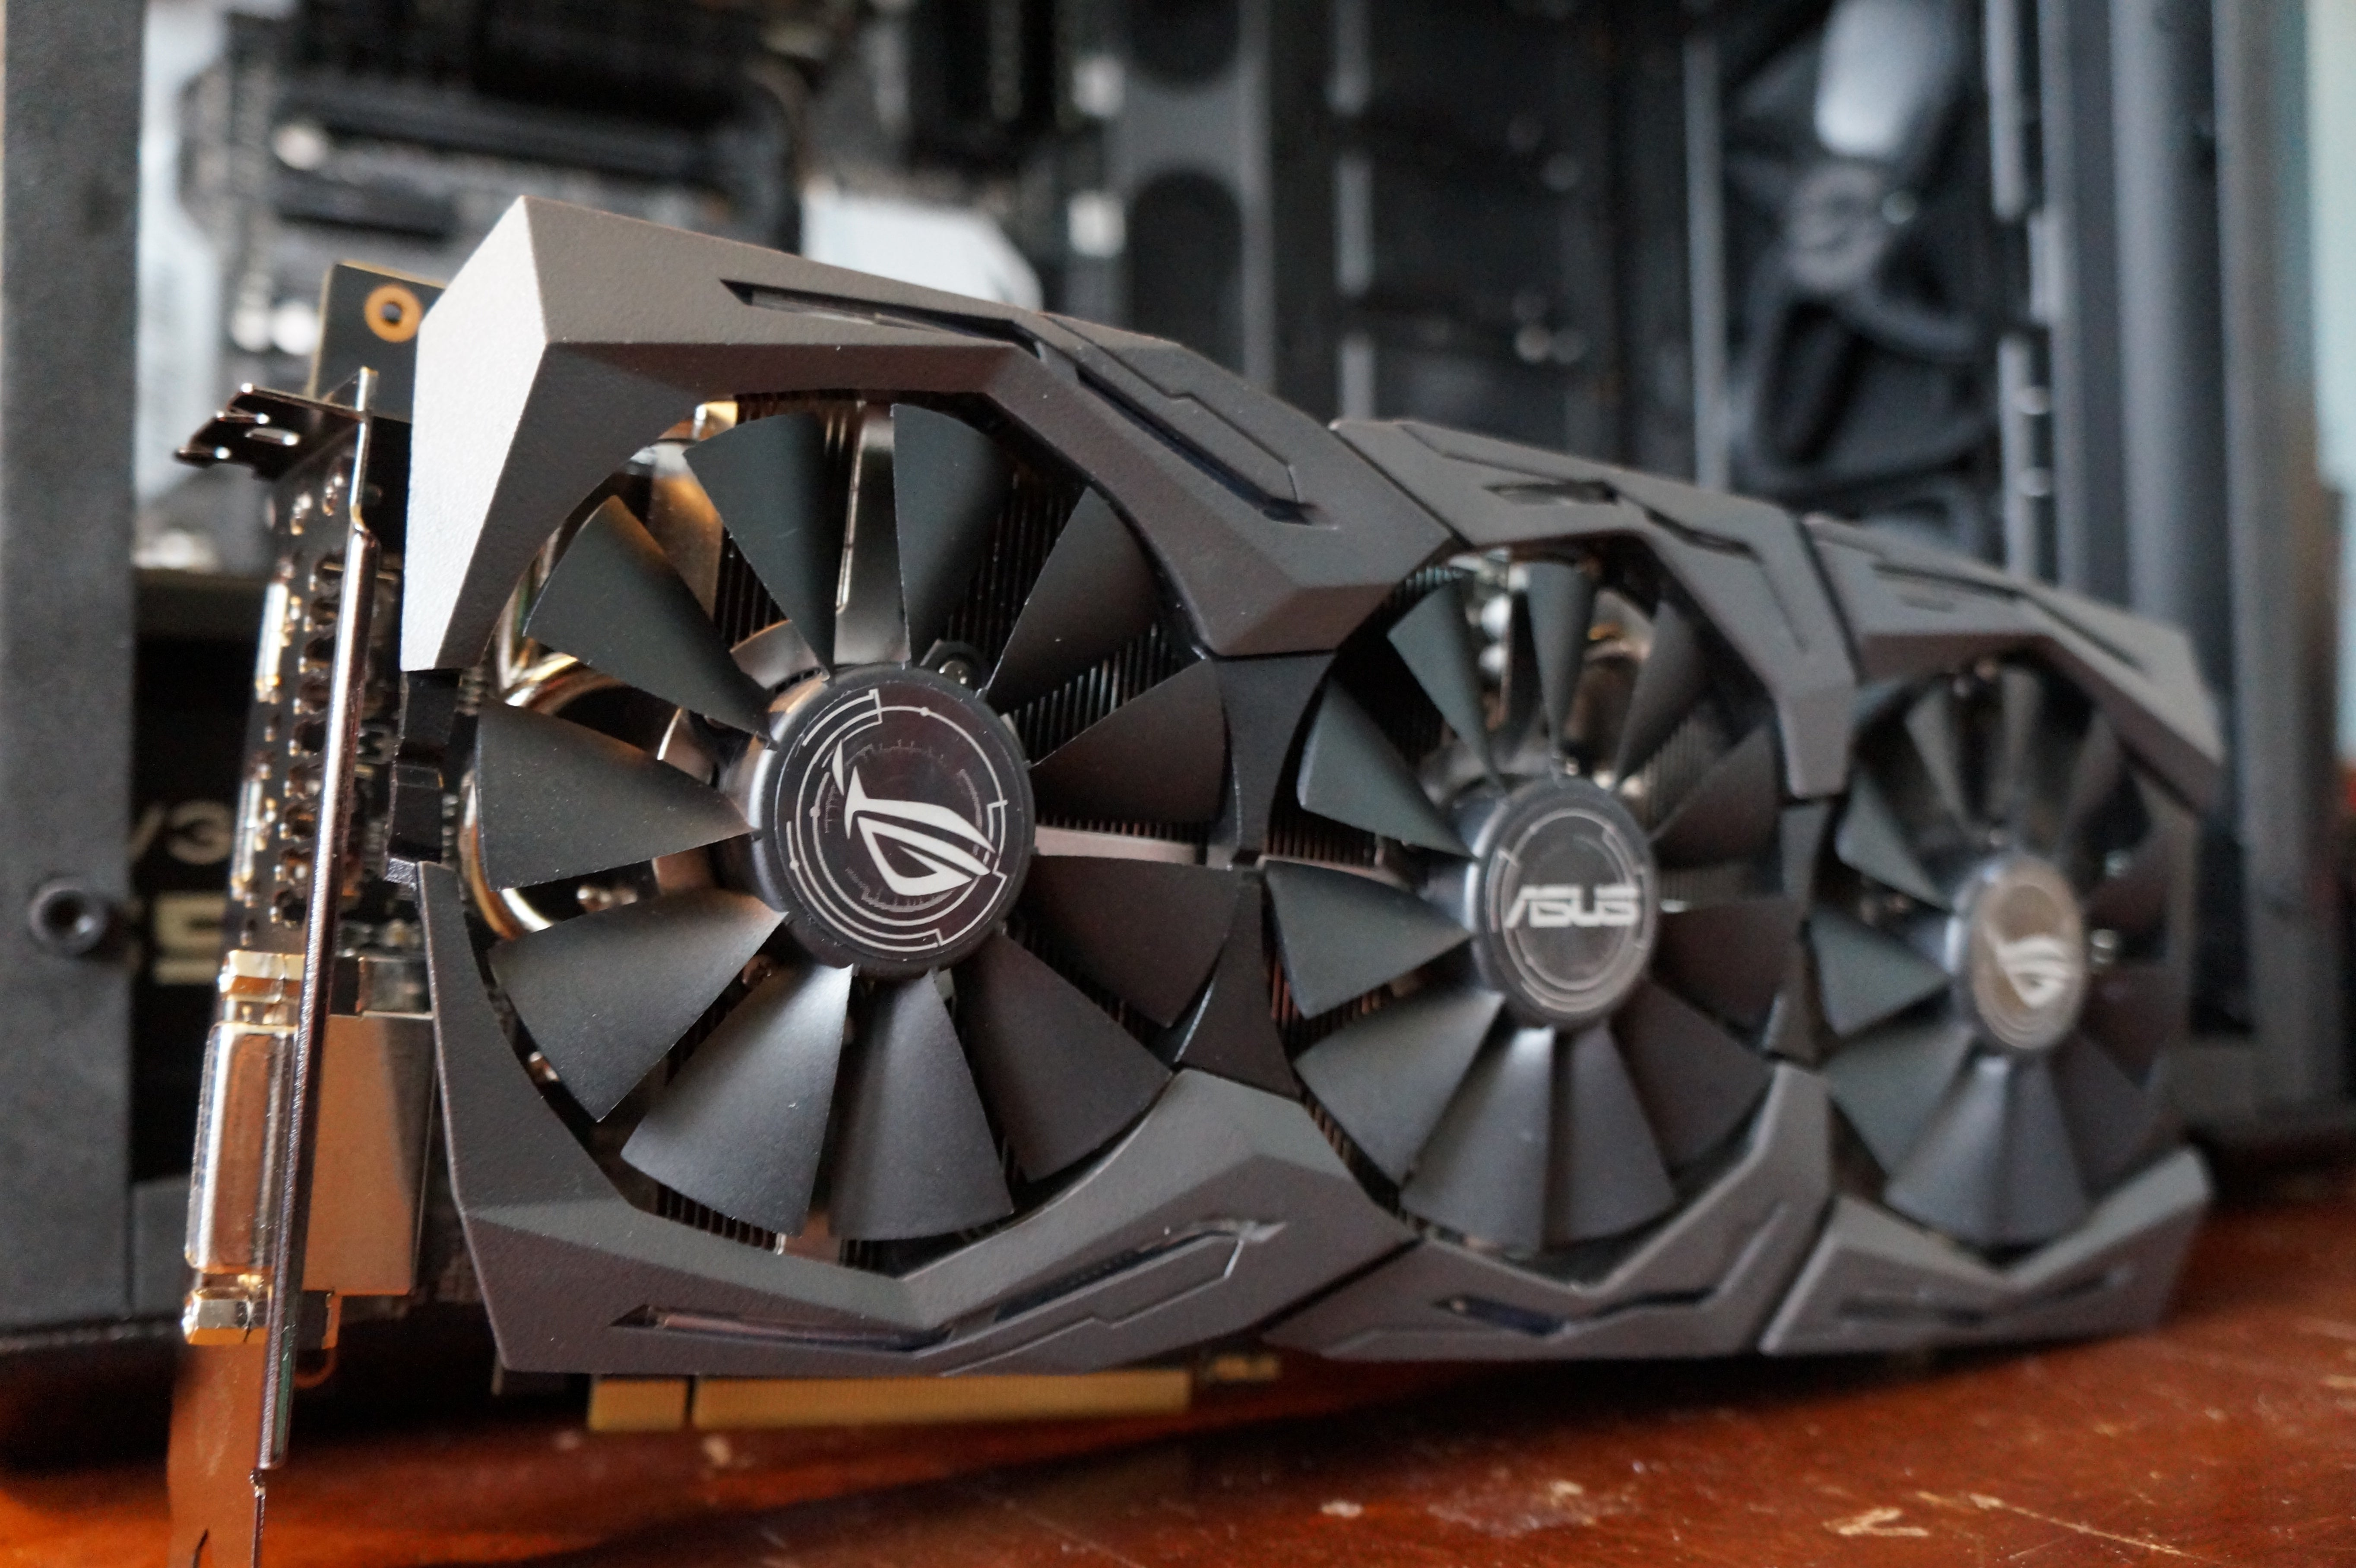 Asus Strix RX 580 Gaming Top OC review: Proof that size matters